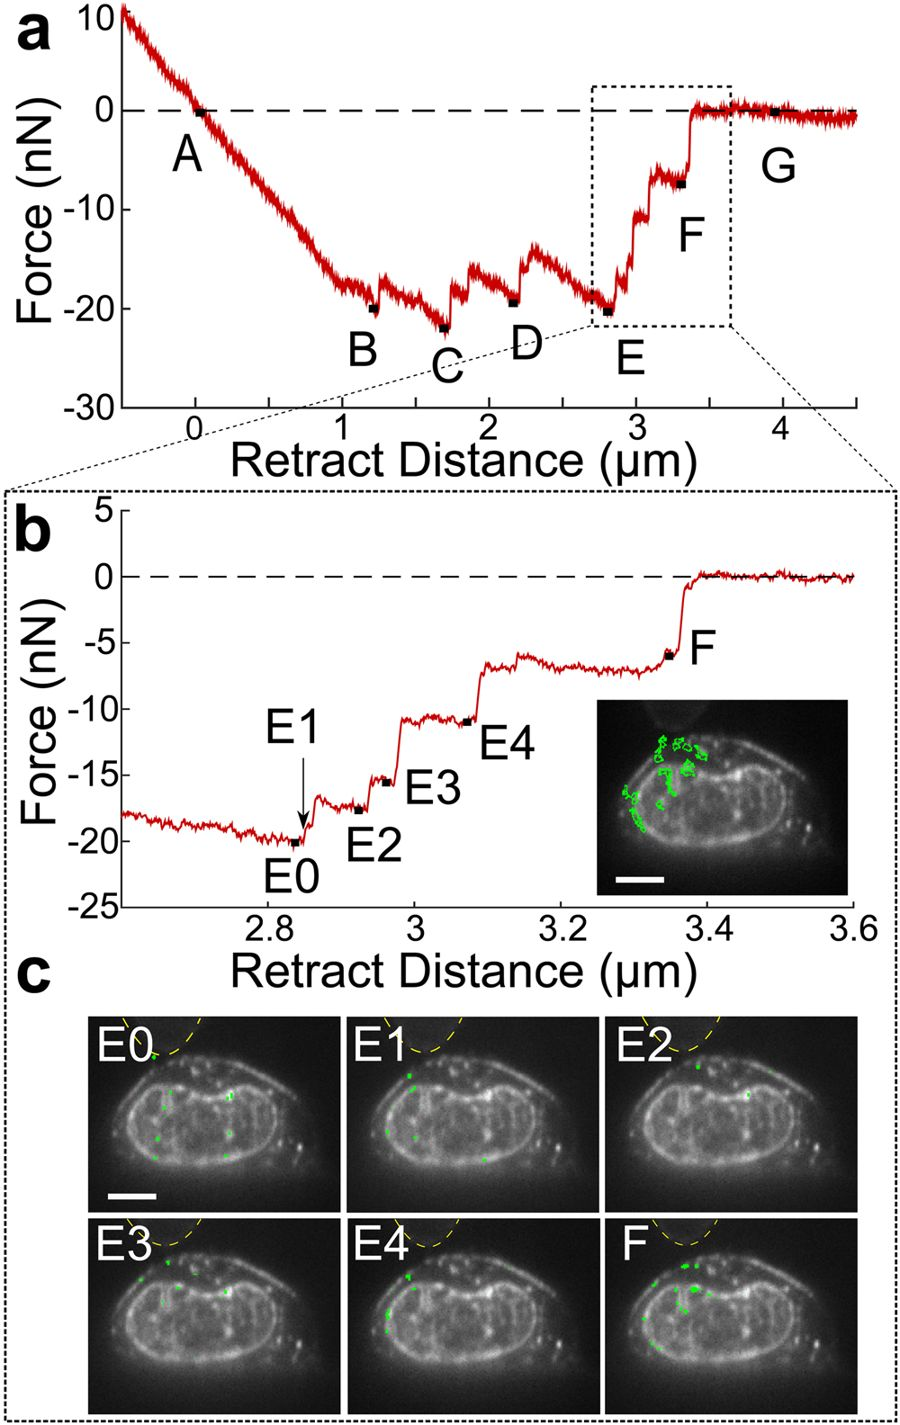 igure 5 from Vertical Light Sheet Enhanced Side-View Imaging for AFM Cell Mechanics Studies: Membrane and nuclear displacements observed in response to force-rupture events between the AFM-tip and cell membrane. (a) Retraction portion of force-indentation curve with important points (A-G) identified. A, the point of zero force application to the cell, B-F, force-rupture peaks, and G, after bead releases from cell. (b) A closer examination of peaks E and F with sub-peaks of the E rupture event identified. No point is shown for E1 because this is the frame immediately following Peak E0. Inset indicates regions where displacement is measured between points E and F highlighted in green. These regions were determined through difference imaging using frames taken at E and F. (c) Regions of cell displacements determined through difference imaging highlighted in green for the sub-peaks indicated in (b). Yellow dashed lines indicate outline of AFM mounted bead. Scale bars = 5 um. NanoWorld Arrow-TL1 tipless AFM cantilevers were used.